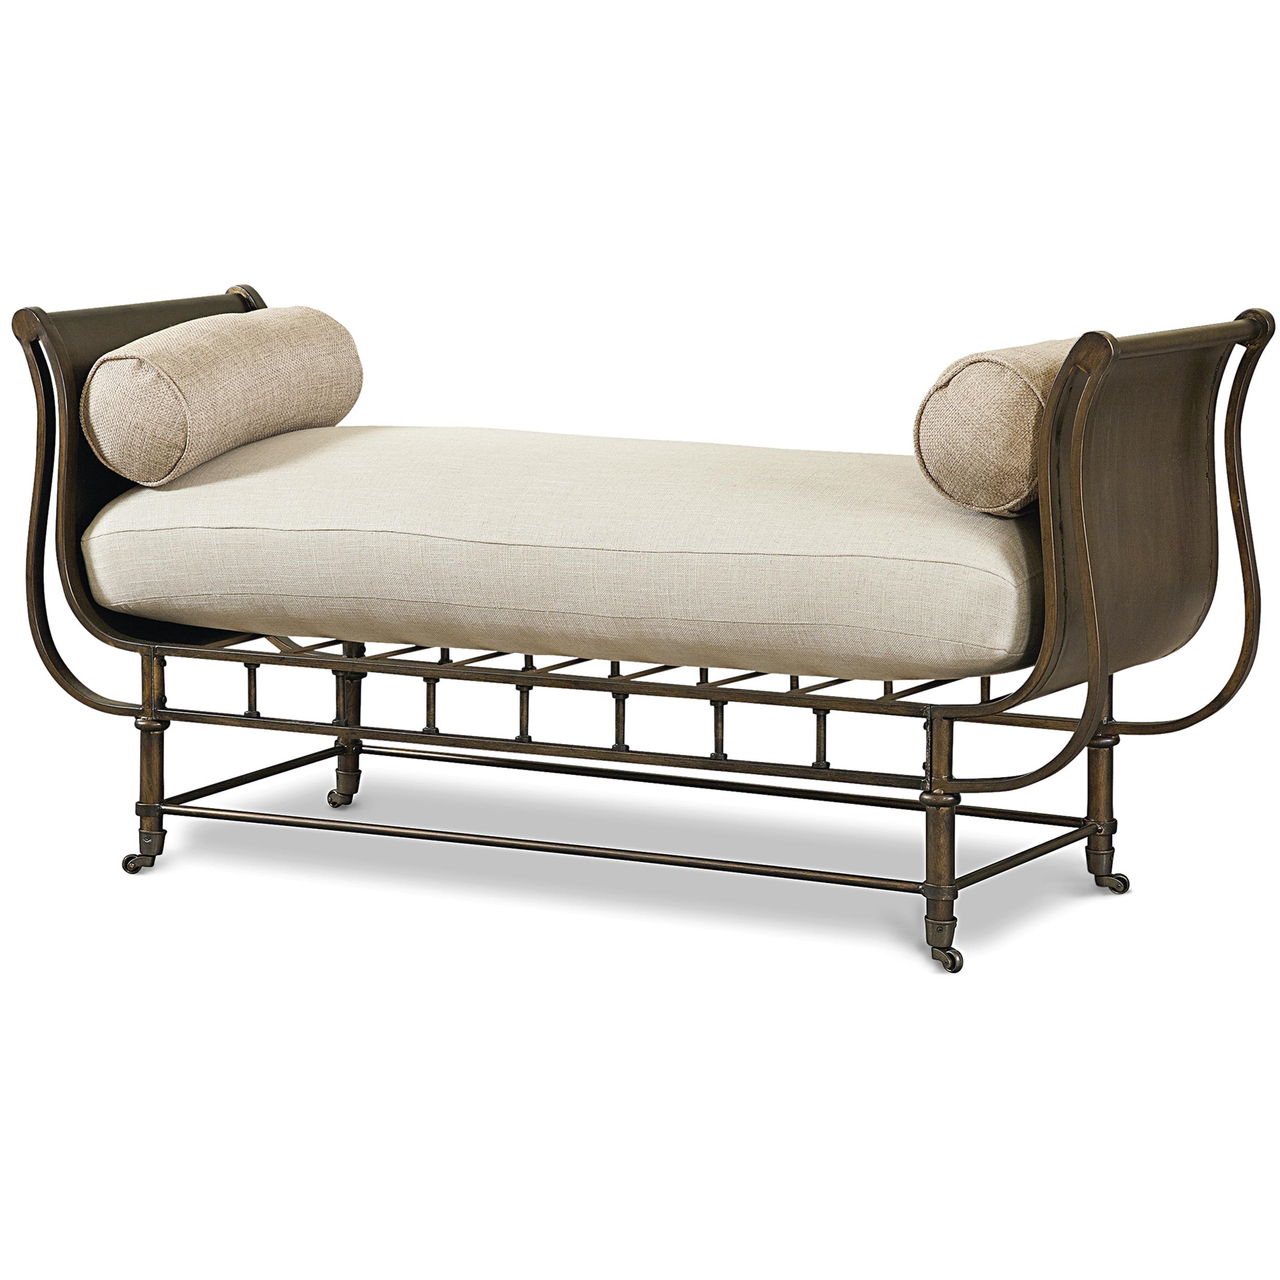 Metal Bedroom Bench Sonoma Metal Frame Bed End Bench On Casters Zin Home